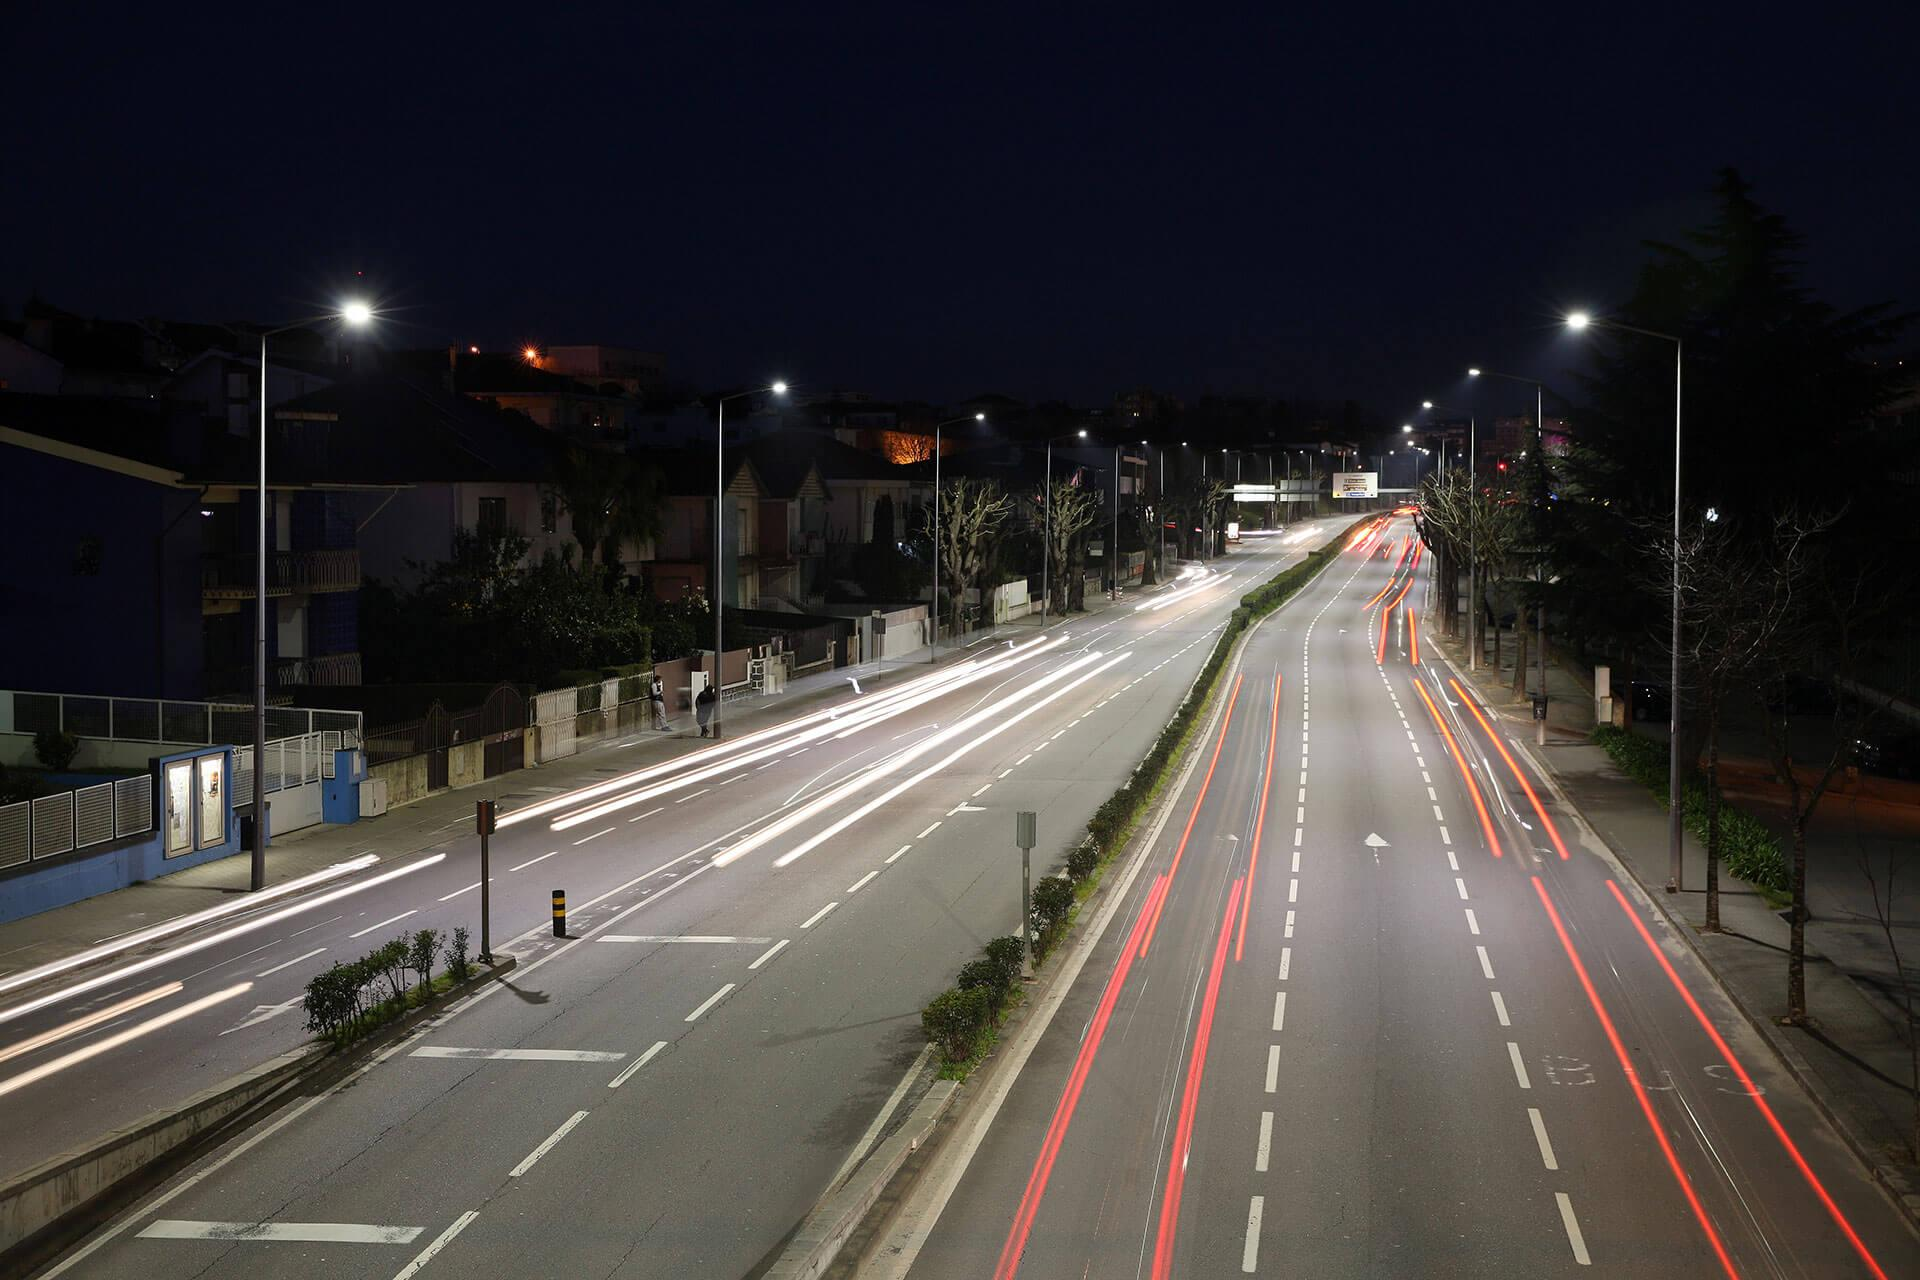 Nearly 4,000 Voltana outdoor LED luminaires light the town of Braga to improve safety and reduce energy costs